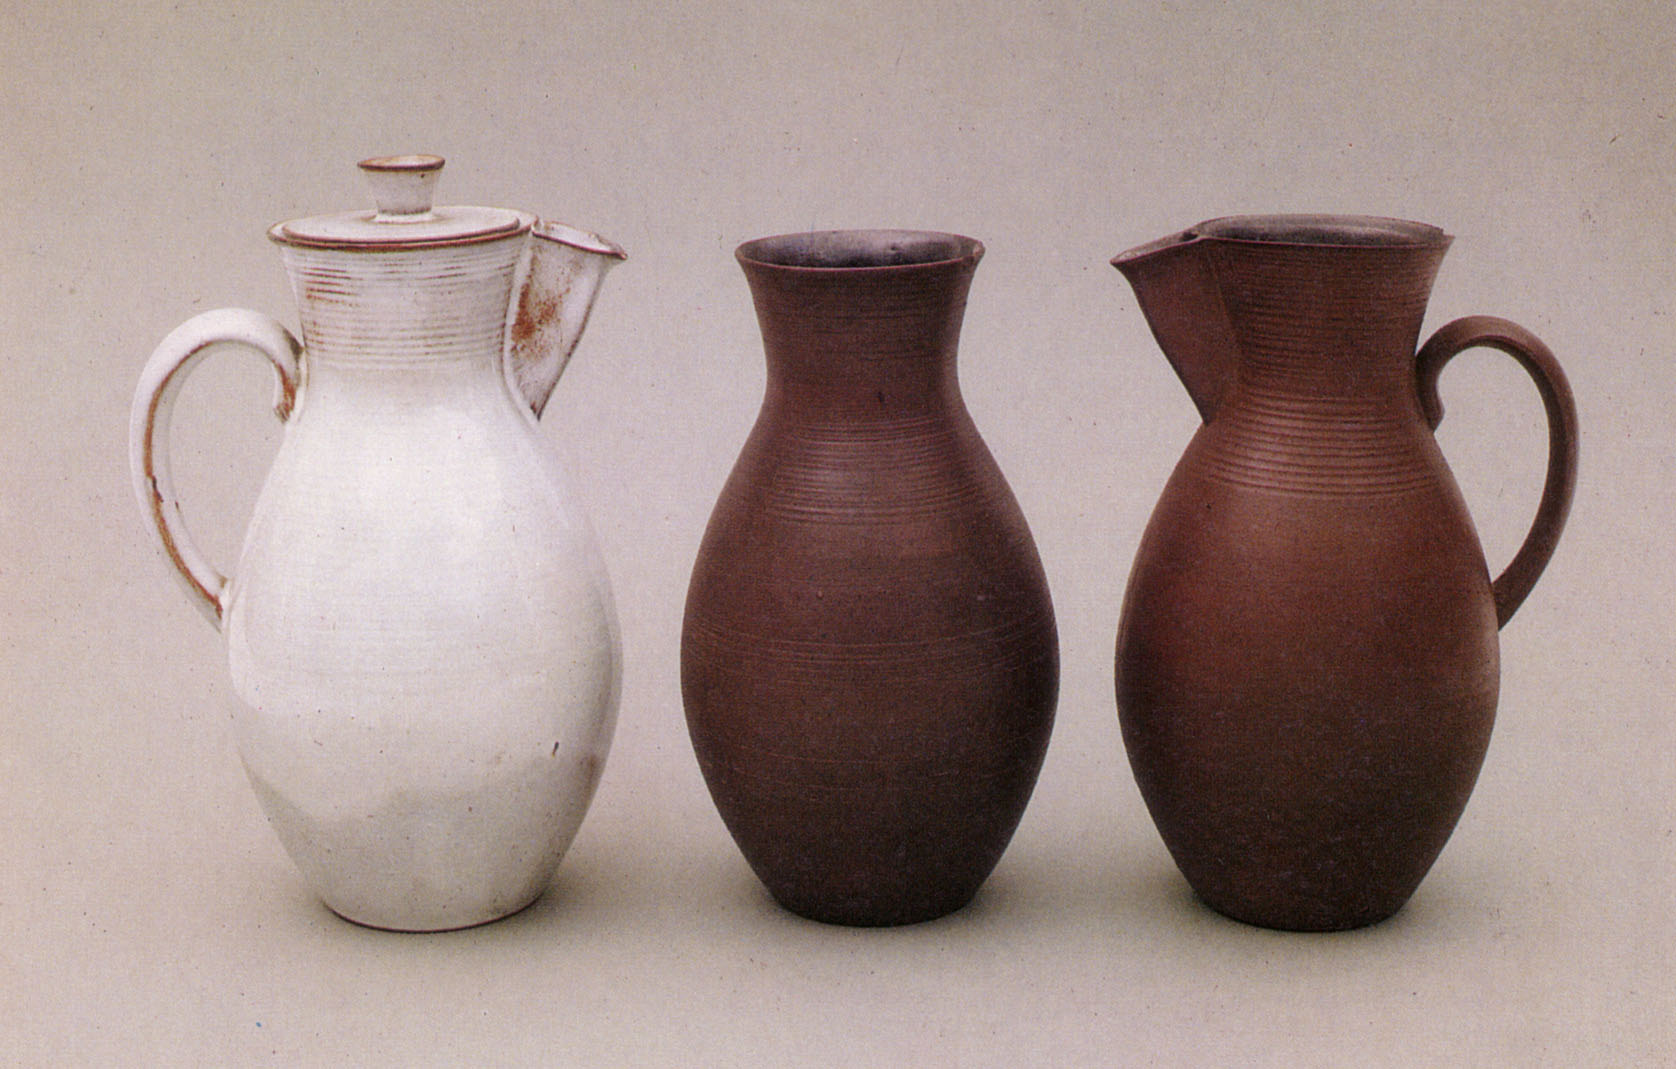 Three Otto Lindig Vessels from the Bauhaus Museum, Berlin